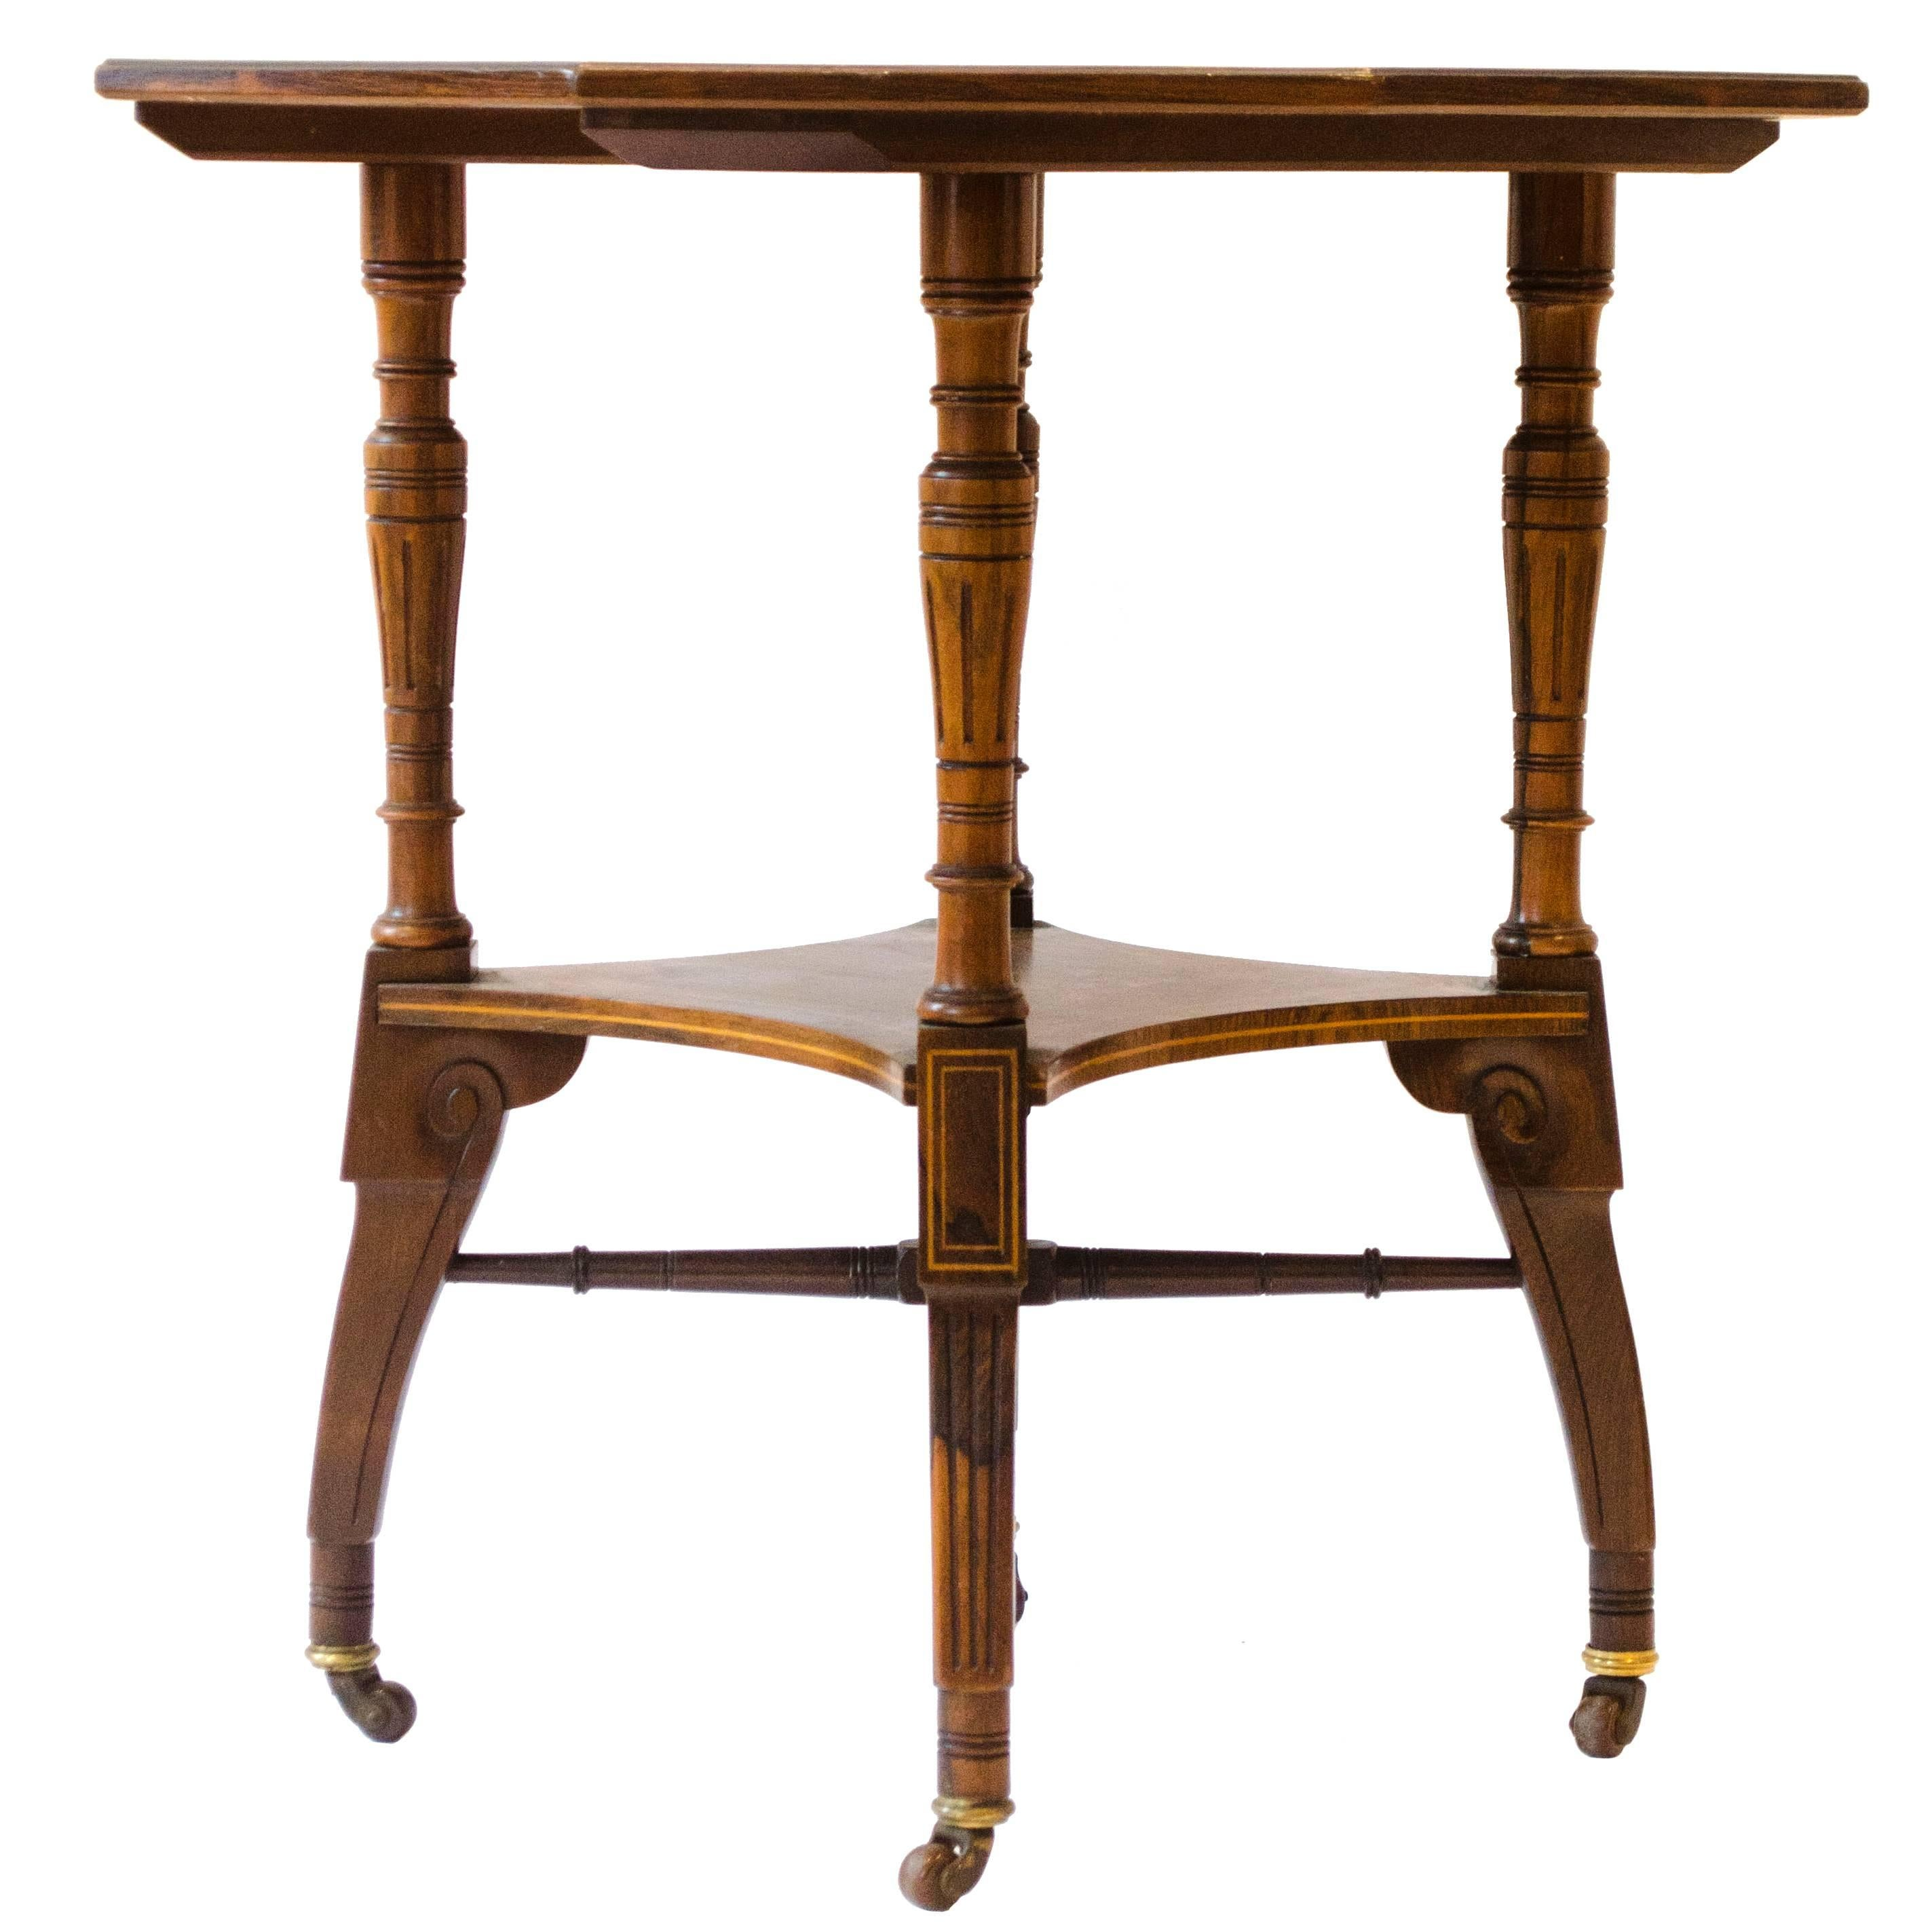 Jas Shoolbred. An Aesthetic Movement Octagonal Rosewood & Inlaid Side Table